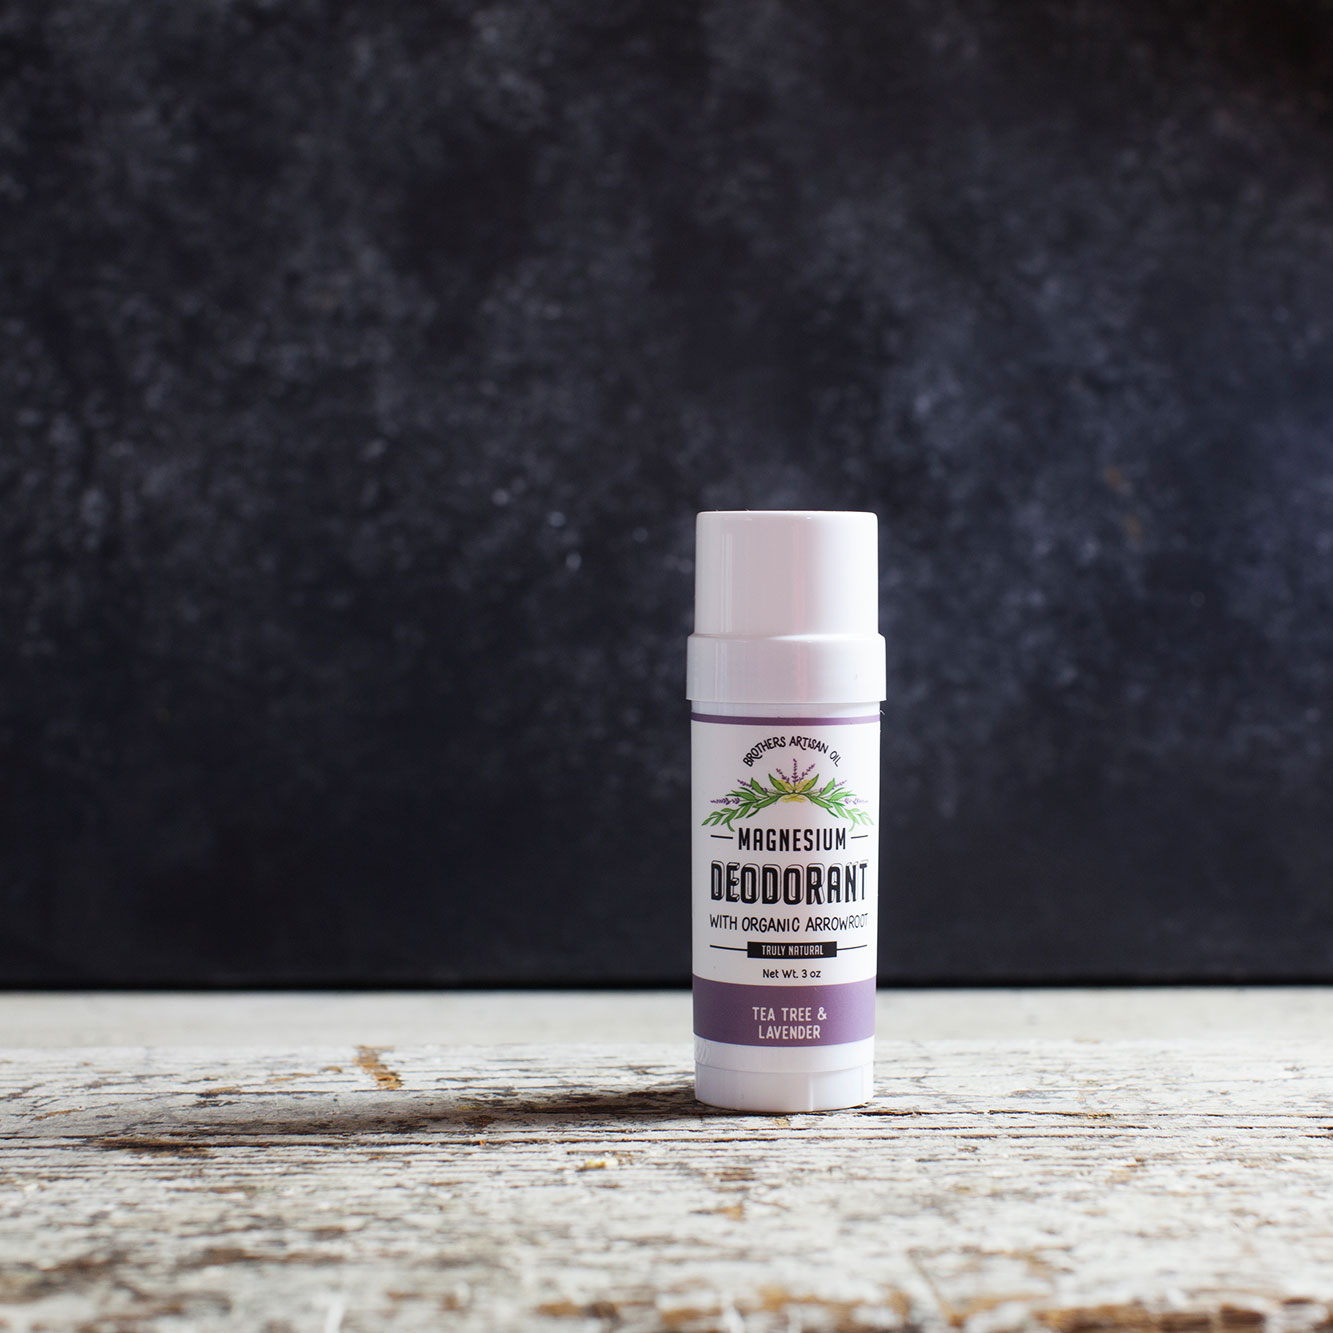 The Magnesium Deodorant: Tea Tree & Lavender